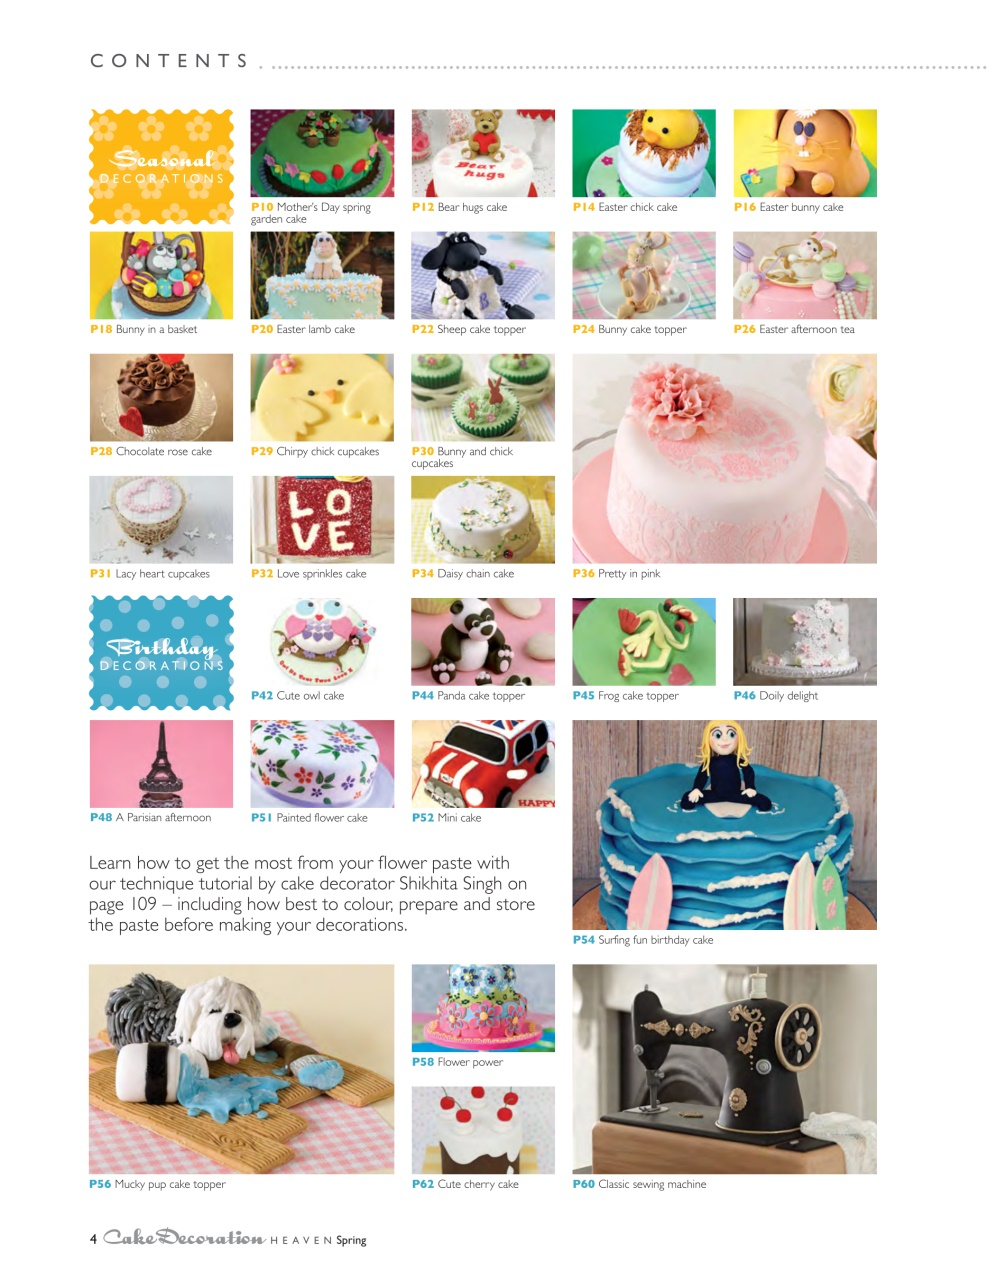 Cake Decorating Heaven Cake Decoration Heaven Spring 2015 ...